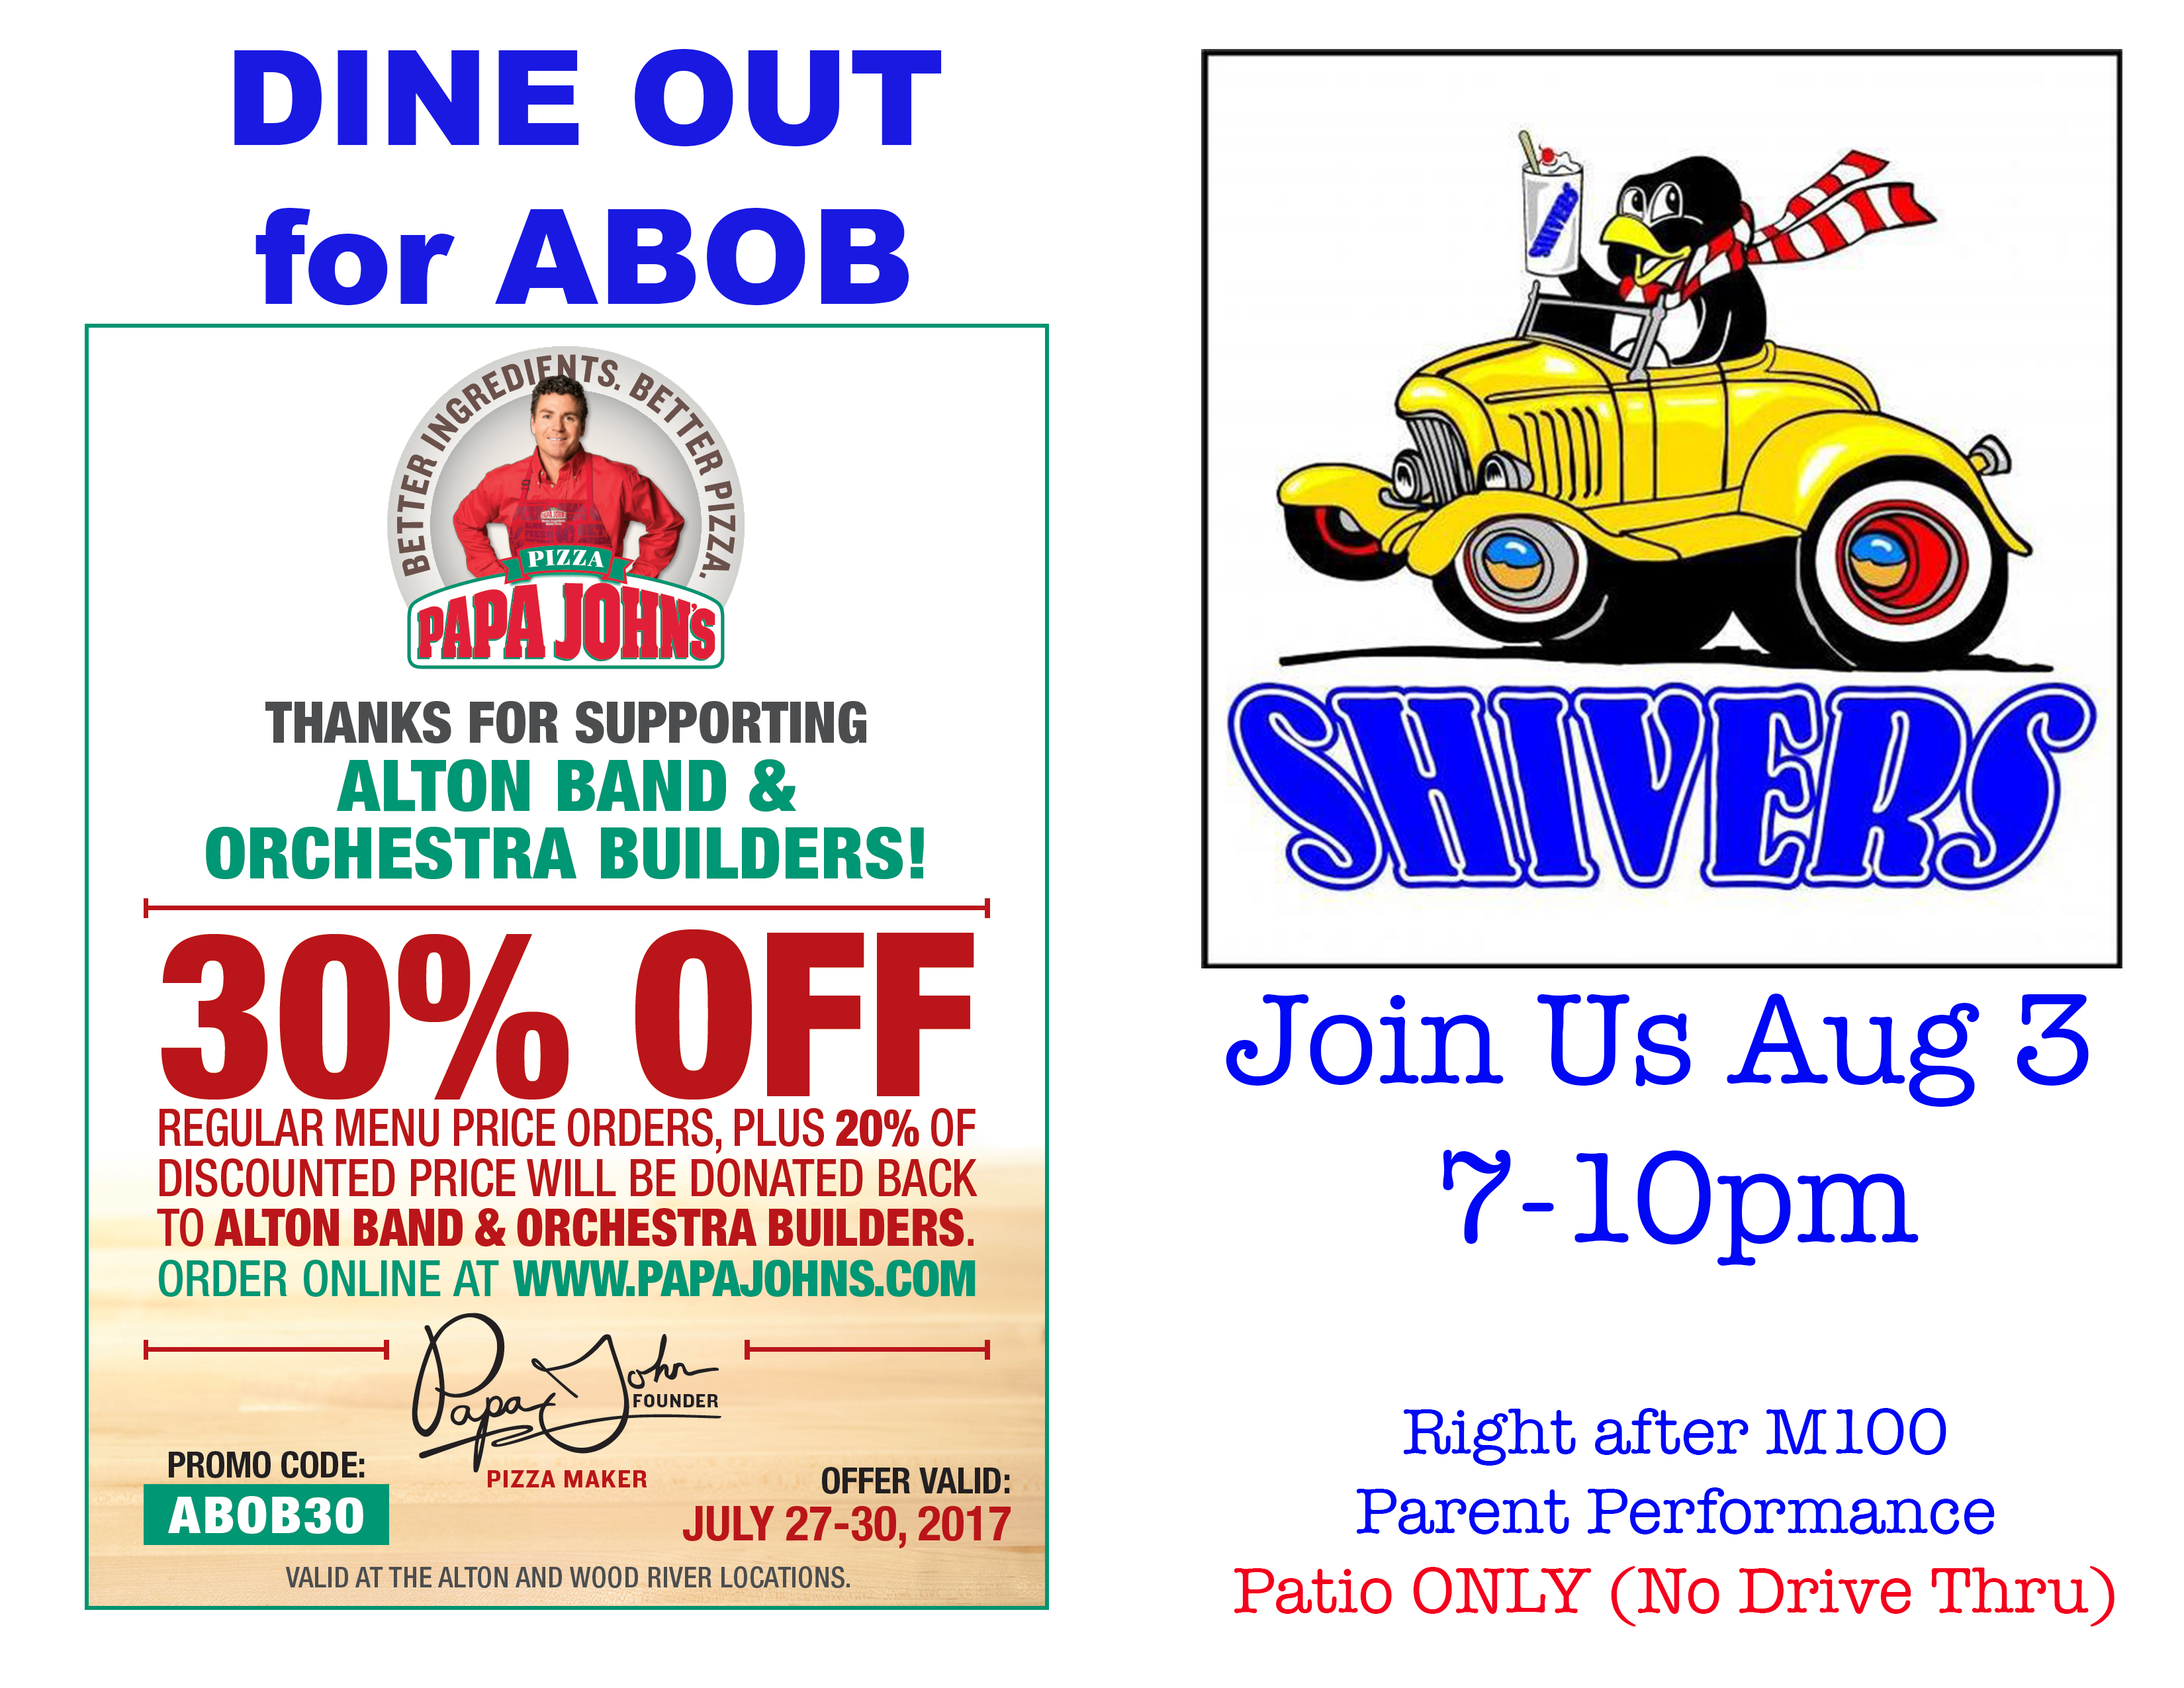 ABOB Dine Out Summer 2017